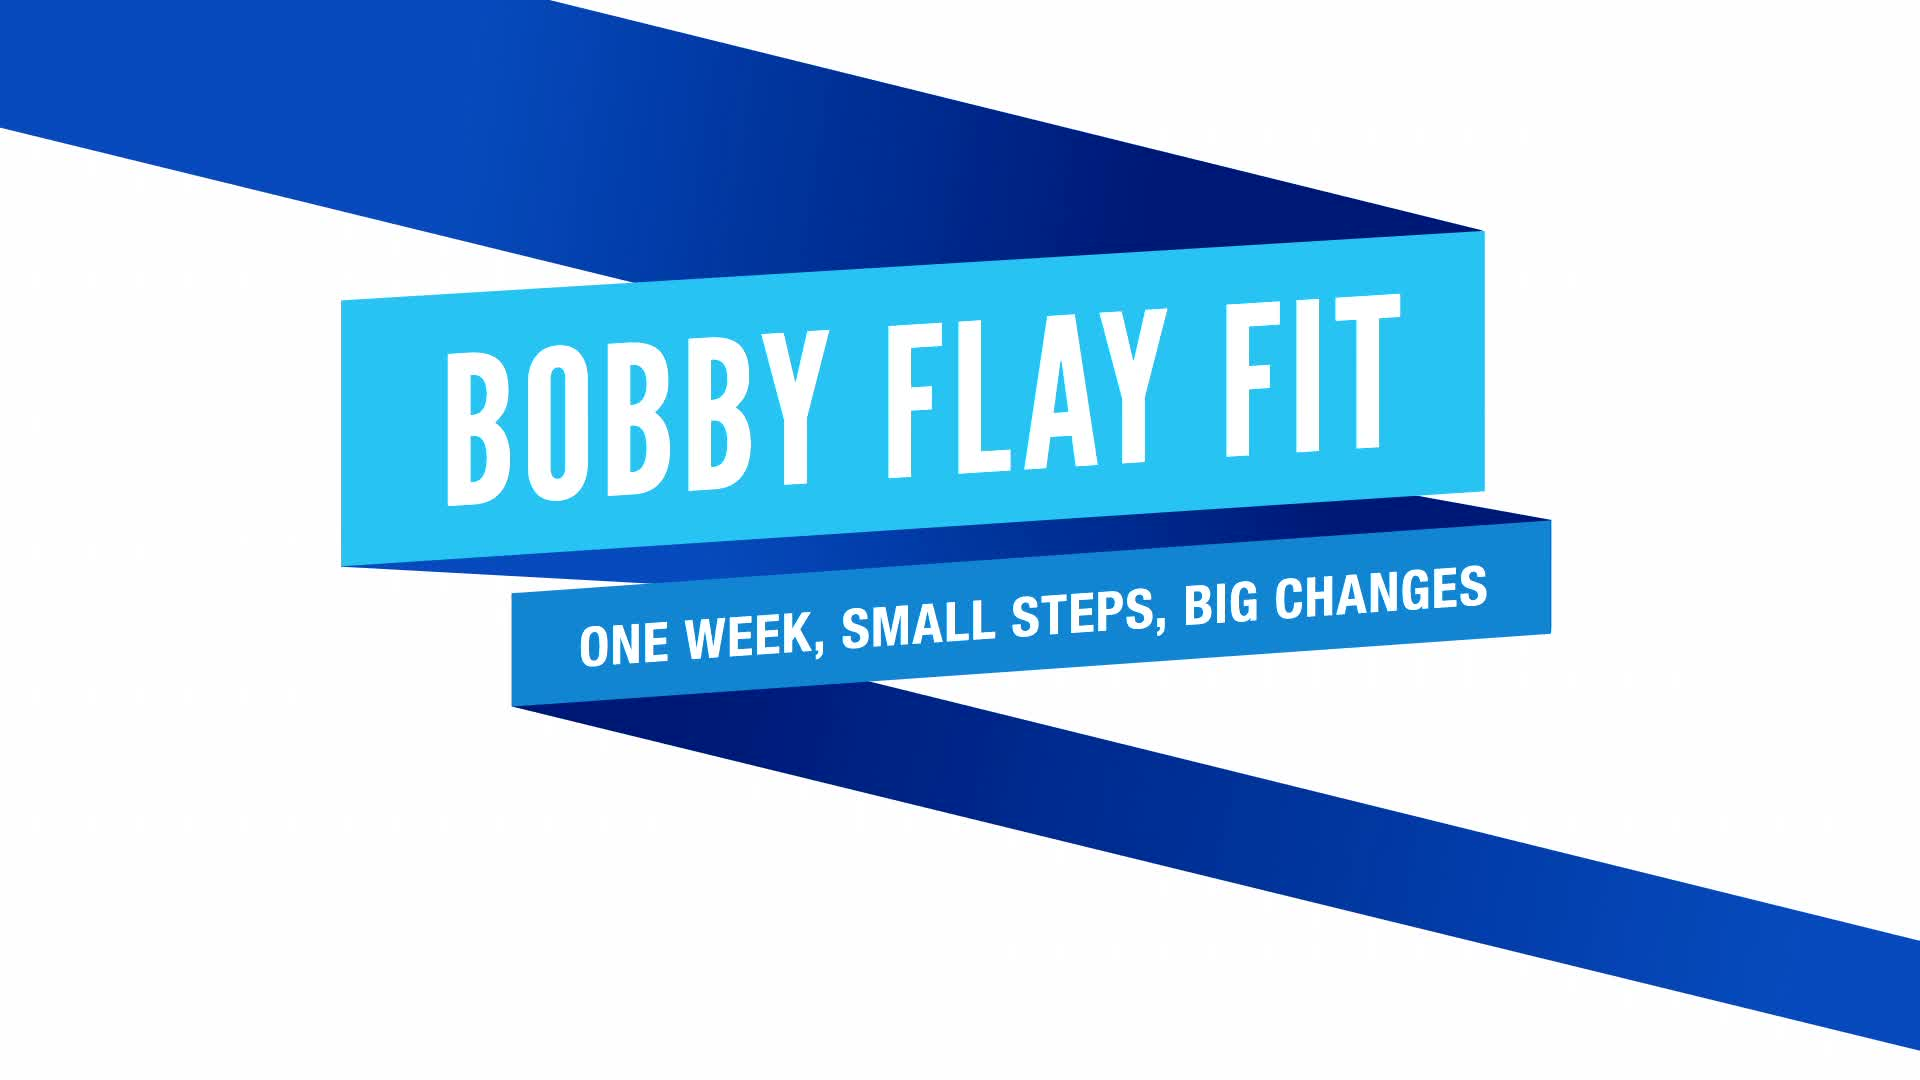 Honoree - Bobby Flay Fit